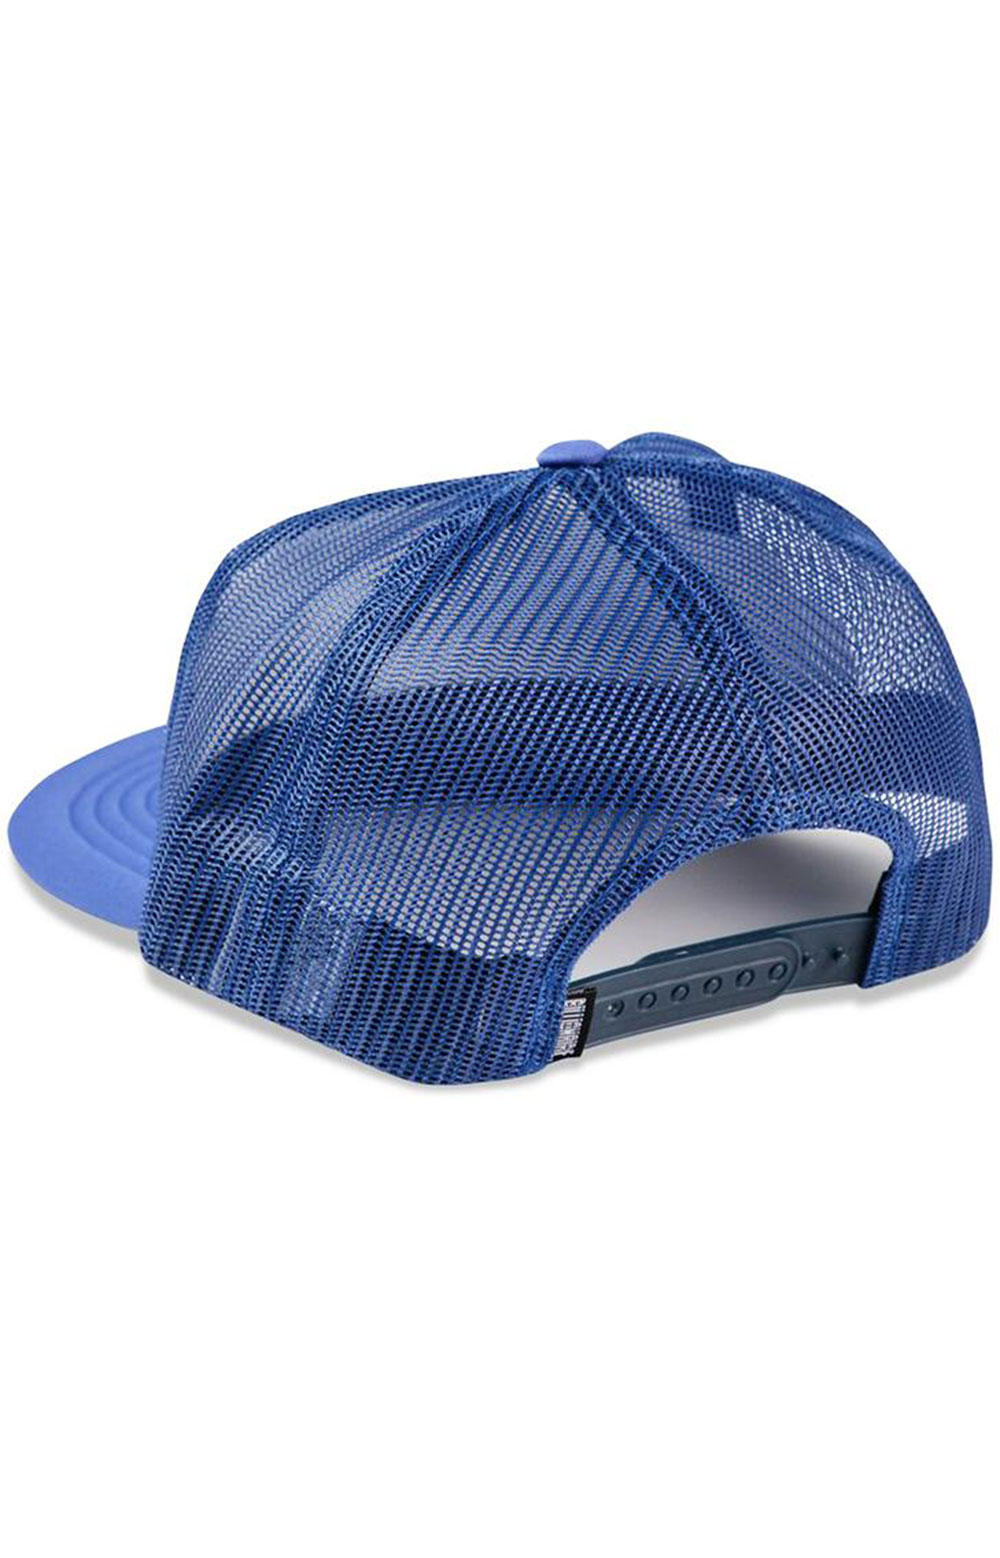 BB Helmet Trucker Hat - Sodalite Blue  2